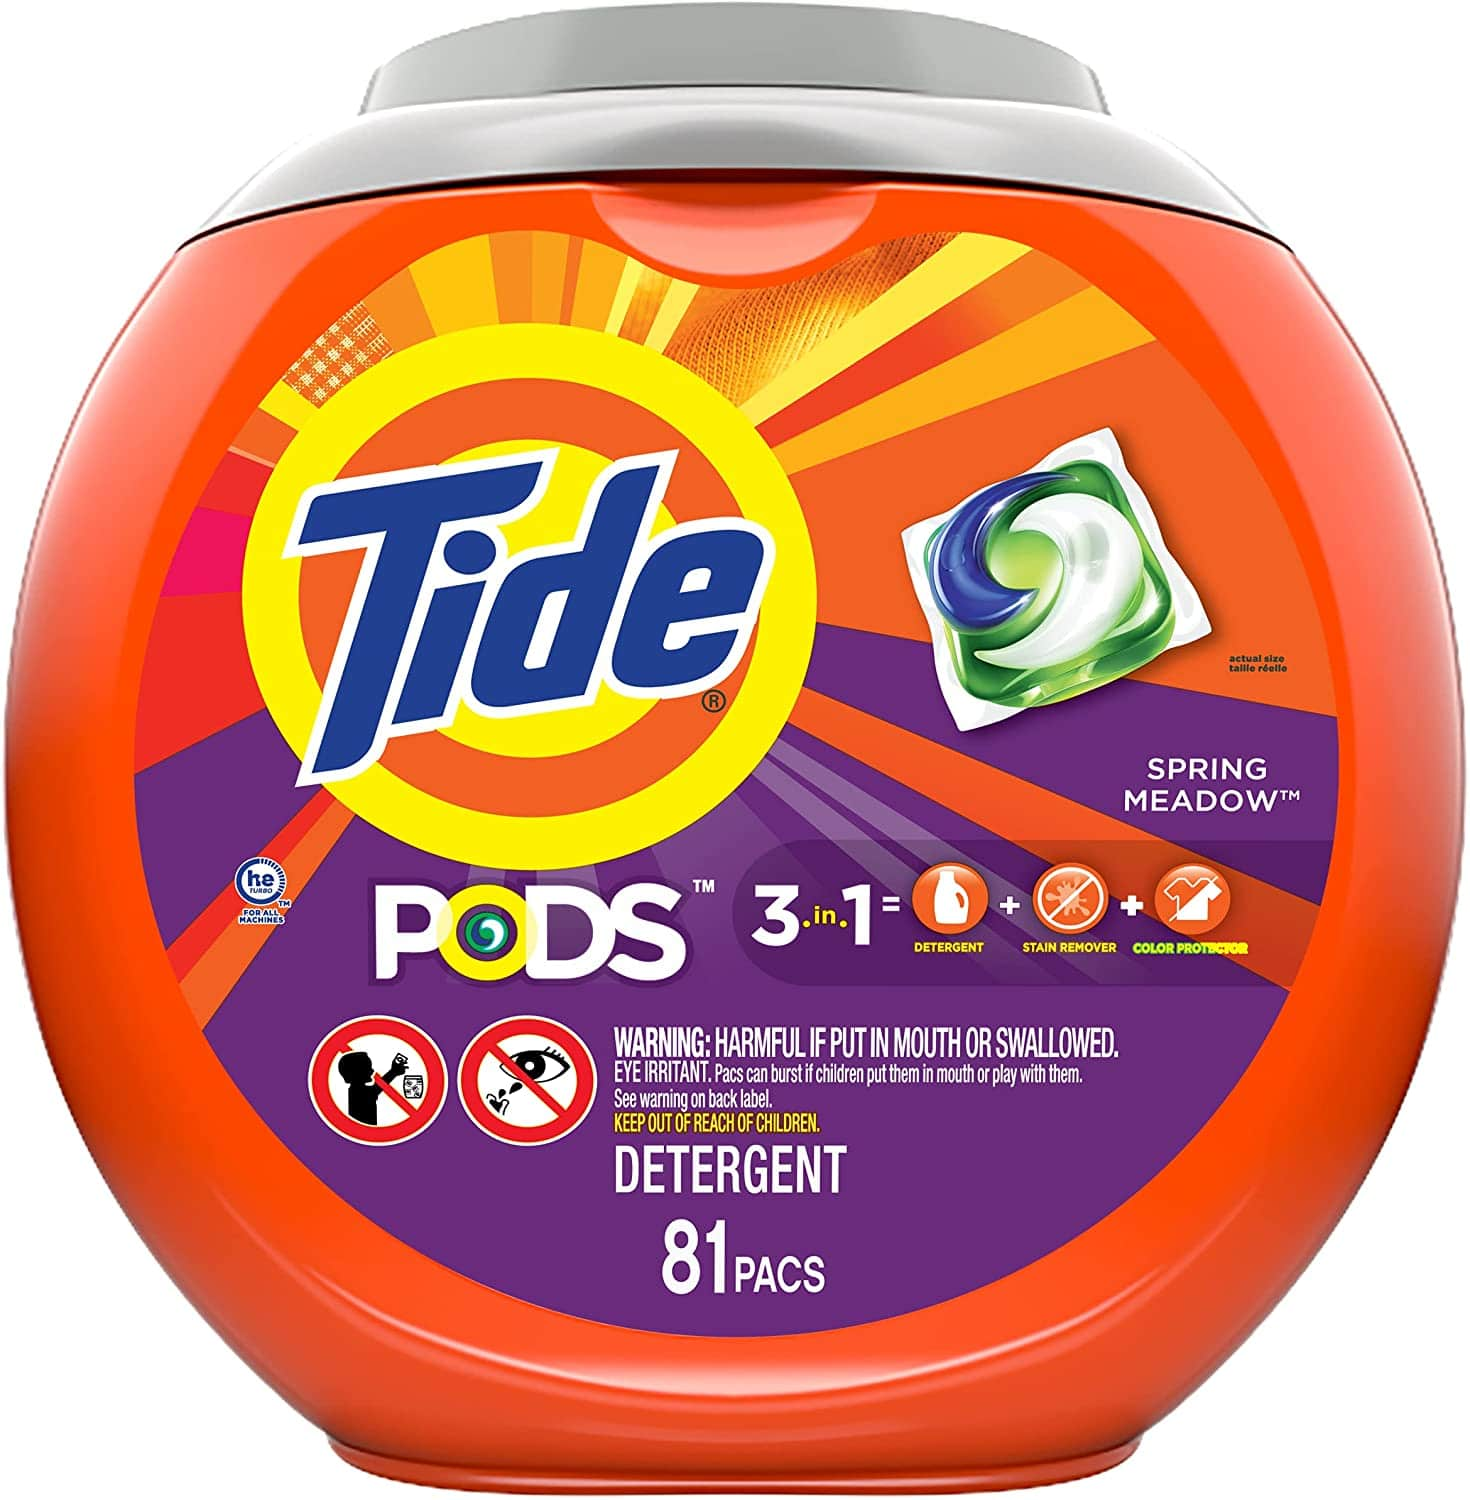 Amazon: 81 Pacs Tide Pods 3-in-1 Laundry Detergent Pacs, Spring Meadow Turbo $13.99 w/ S&S + Free Prime Shipping